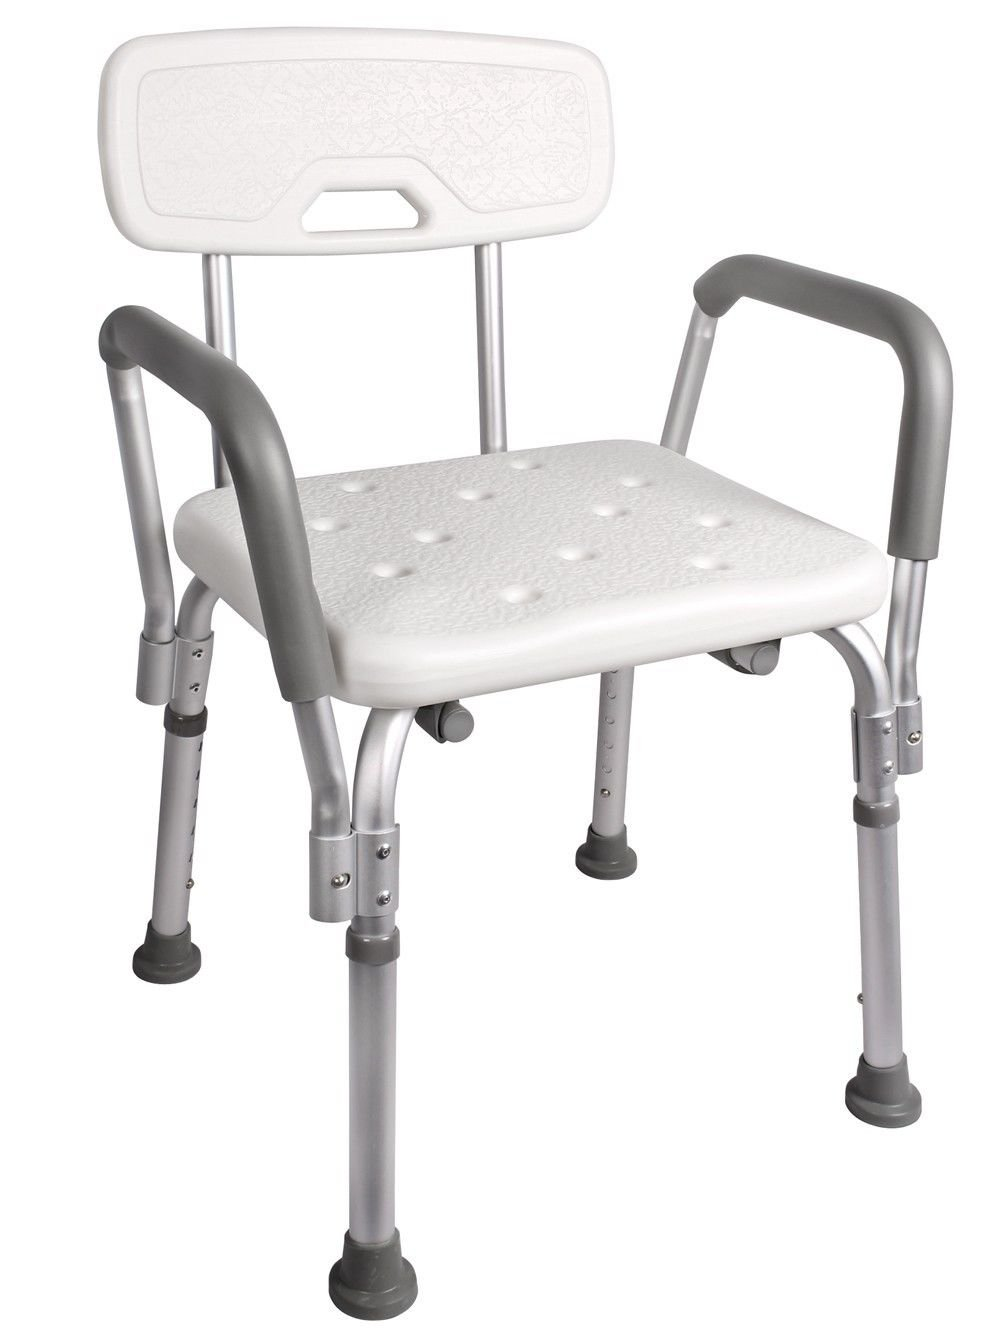 Amazon.com: TMS® Adjustable Medical Shower Chair Bathtub Bench ...